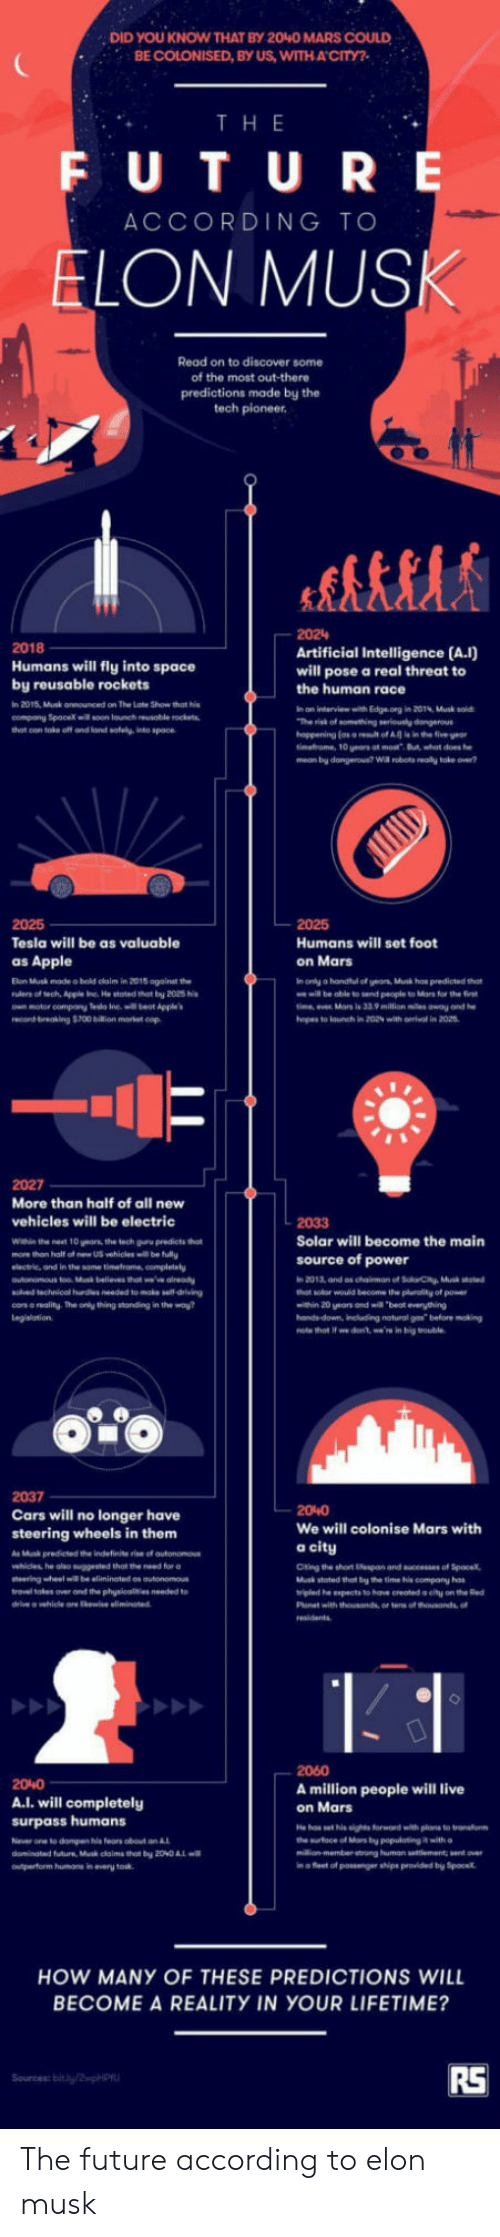 """Nonee: DID YOU KNOW THAT BY 2040 MARS COULD  BE COLONISED, BY US, WITHACITY?  TH E  F U T U RE  ACCORDING TO  LON MUS  Read on to discover some  of the most out-there  predictions made by the  tech pioneer  2024  2018  Humans will fly into space  by reusable rockets  in 2015, Musk announced on The Late Show that i  company Spacex soon lonch eusoble rockets  Artificial Intelligence (A.I)  will pose a real threat to  the human race  n on interview with Edge.org in 201%, Musk soid  2025  Tesla will be as valuable  as Apple  Elon Musk made o bold claim in 2015 againat the  own motor compony Teslo Inel et Appe  Humans will set foot  on Mars  in only a handitul of yeas, Ms hes predicted hat  me ill be oble to send people to Mars for the  2027  More than half of all new  vehicles will be electric  Within the nest 10 years, the tech guru predicts thot  more then half of new US vehicles will be fully  lectrie, and in the same timefrome, complesly  2033  Solar will become the main  source of power  solved lechnicol ies eeded to moke sell driving  cos e reality The only thing stonding in the way  hat solor would become te plurality of power  win 20 eas and will beat eveything  2037  Cars will no longer have  steering wheels in them  As predeted indefinite """"to of autono  We will colonise Mars with  a city  Citing the short iespan and sceesses of Sp  Musk stoted thet by the time is company has  ษ.led he """" ts to hos cremel citu ontheGod  she olso """"  sted thot ขาย  for @  20%0  A.l. will completely  surpass humans  None to dompen his fears obout an  2060  A million people will live  on Mars  o leet of ssnger shipe provided by Spo  HOW MANY OF THESE PREDICTIONS WILL  BECOME A REALITY IN YOUR LIFETIME?  RS The future according to elon musk"""